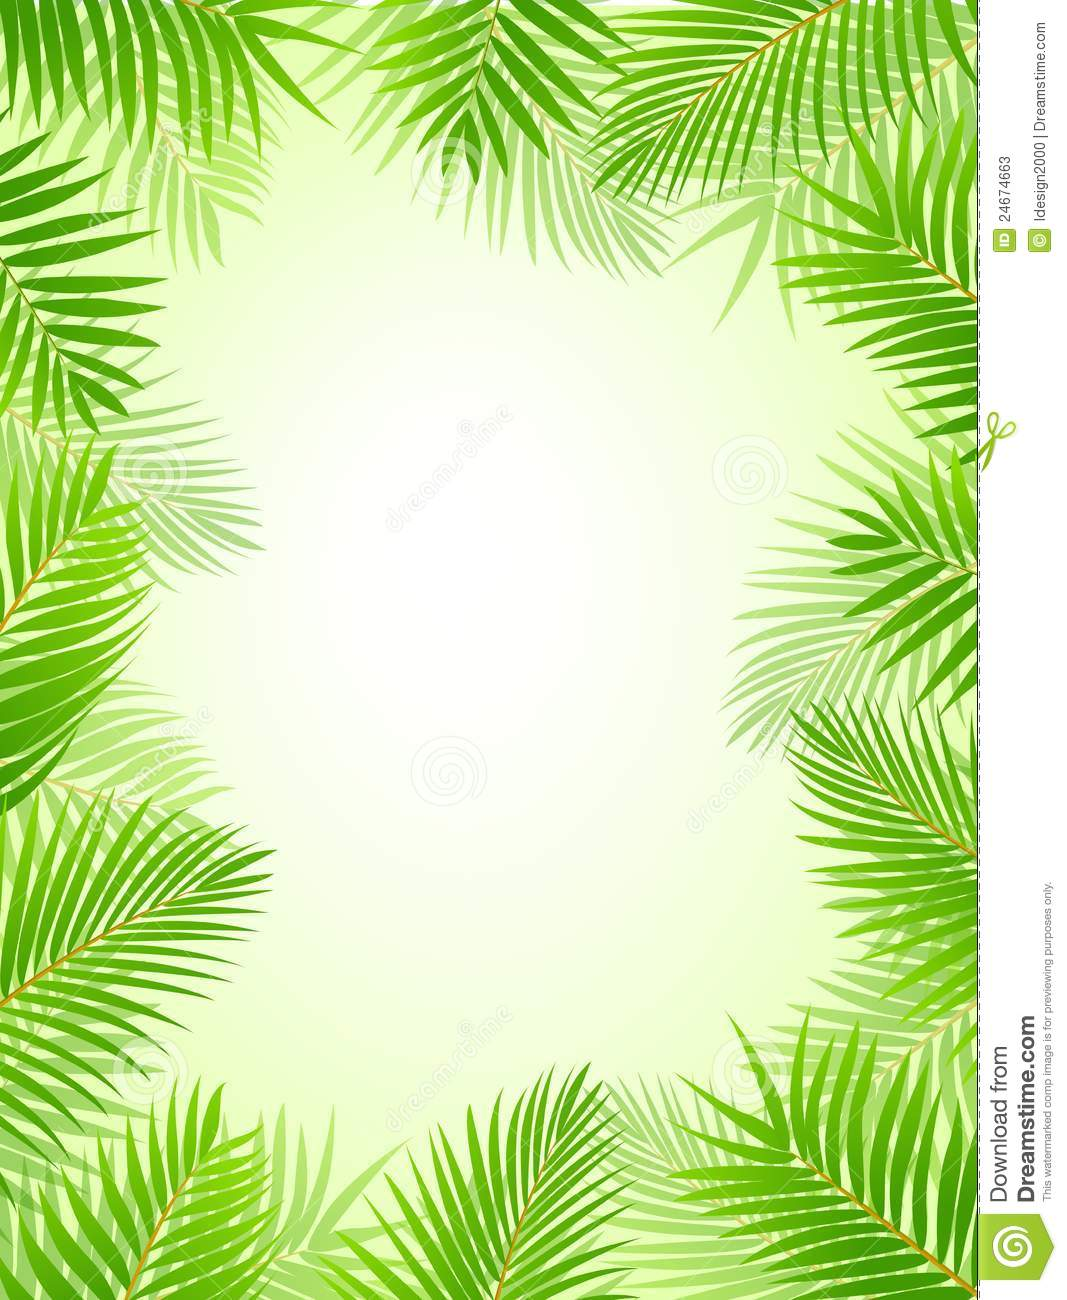 Stock Photos: Palm tree frame background. Image: 24674663